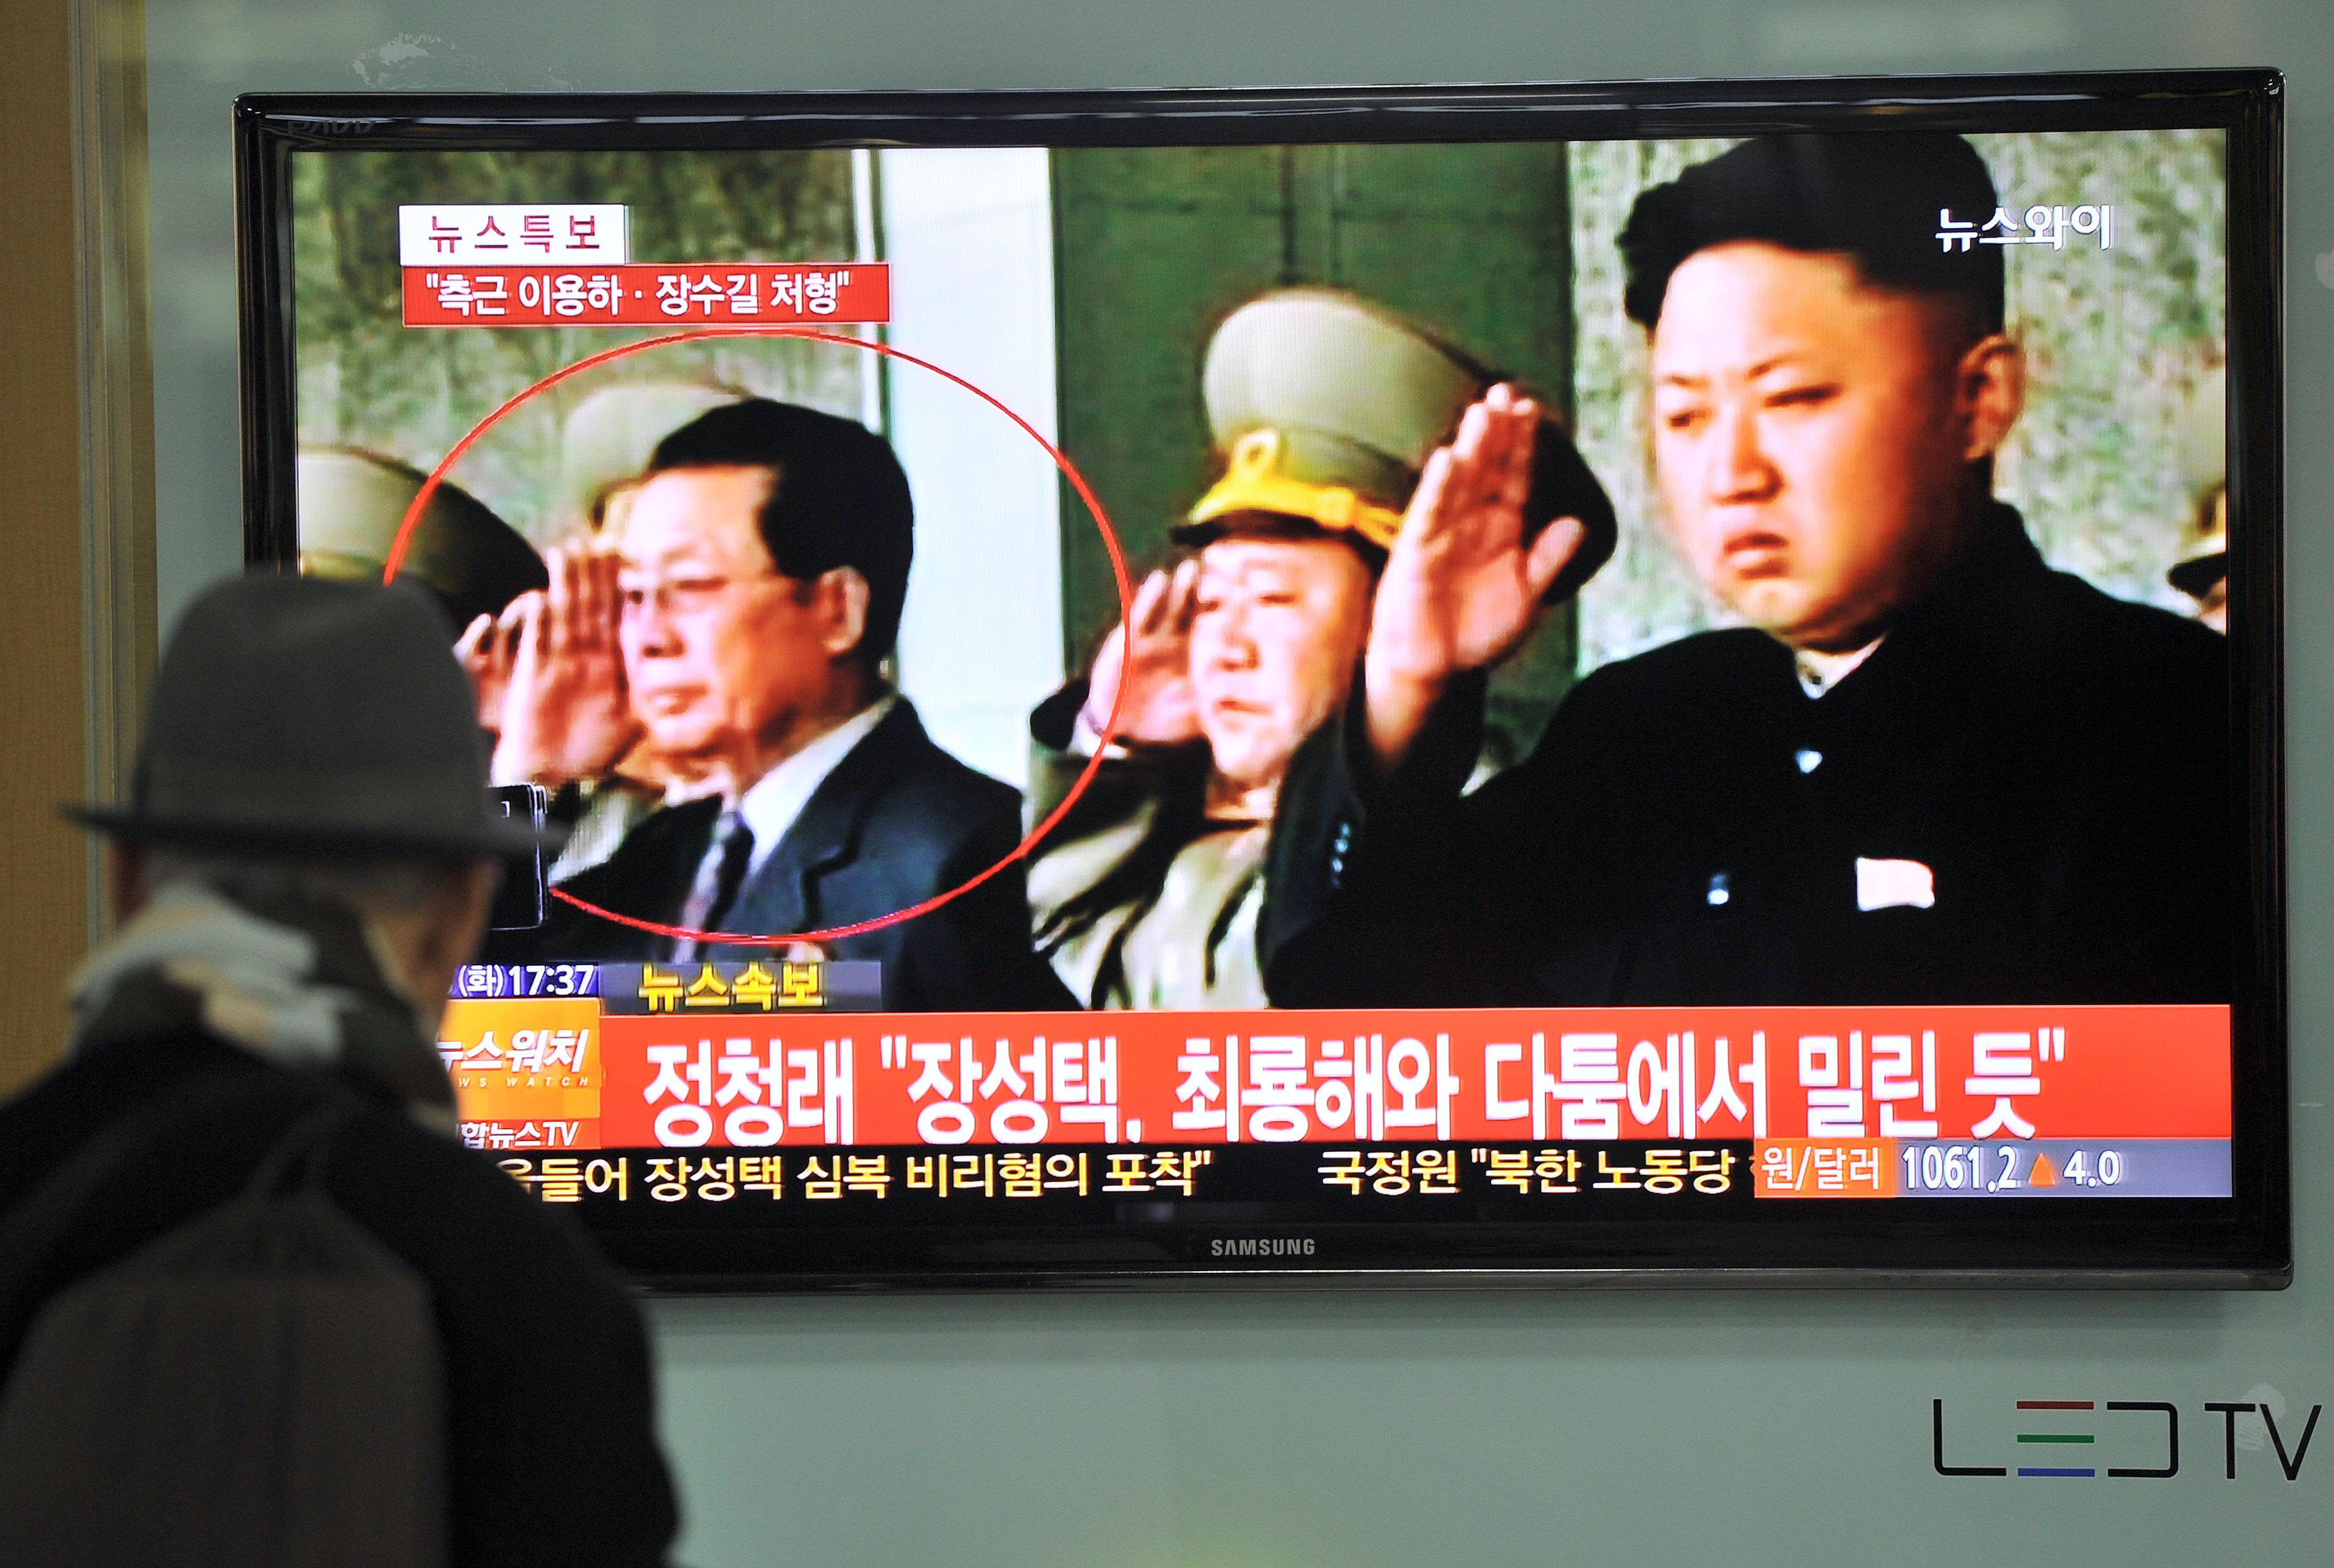 After execution, North Korean media delete tens of thousands